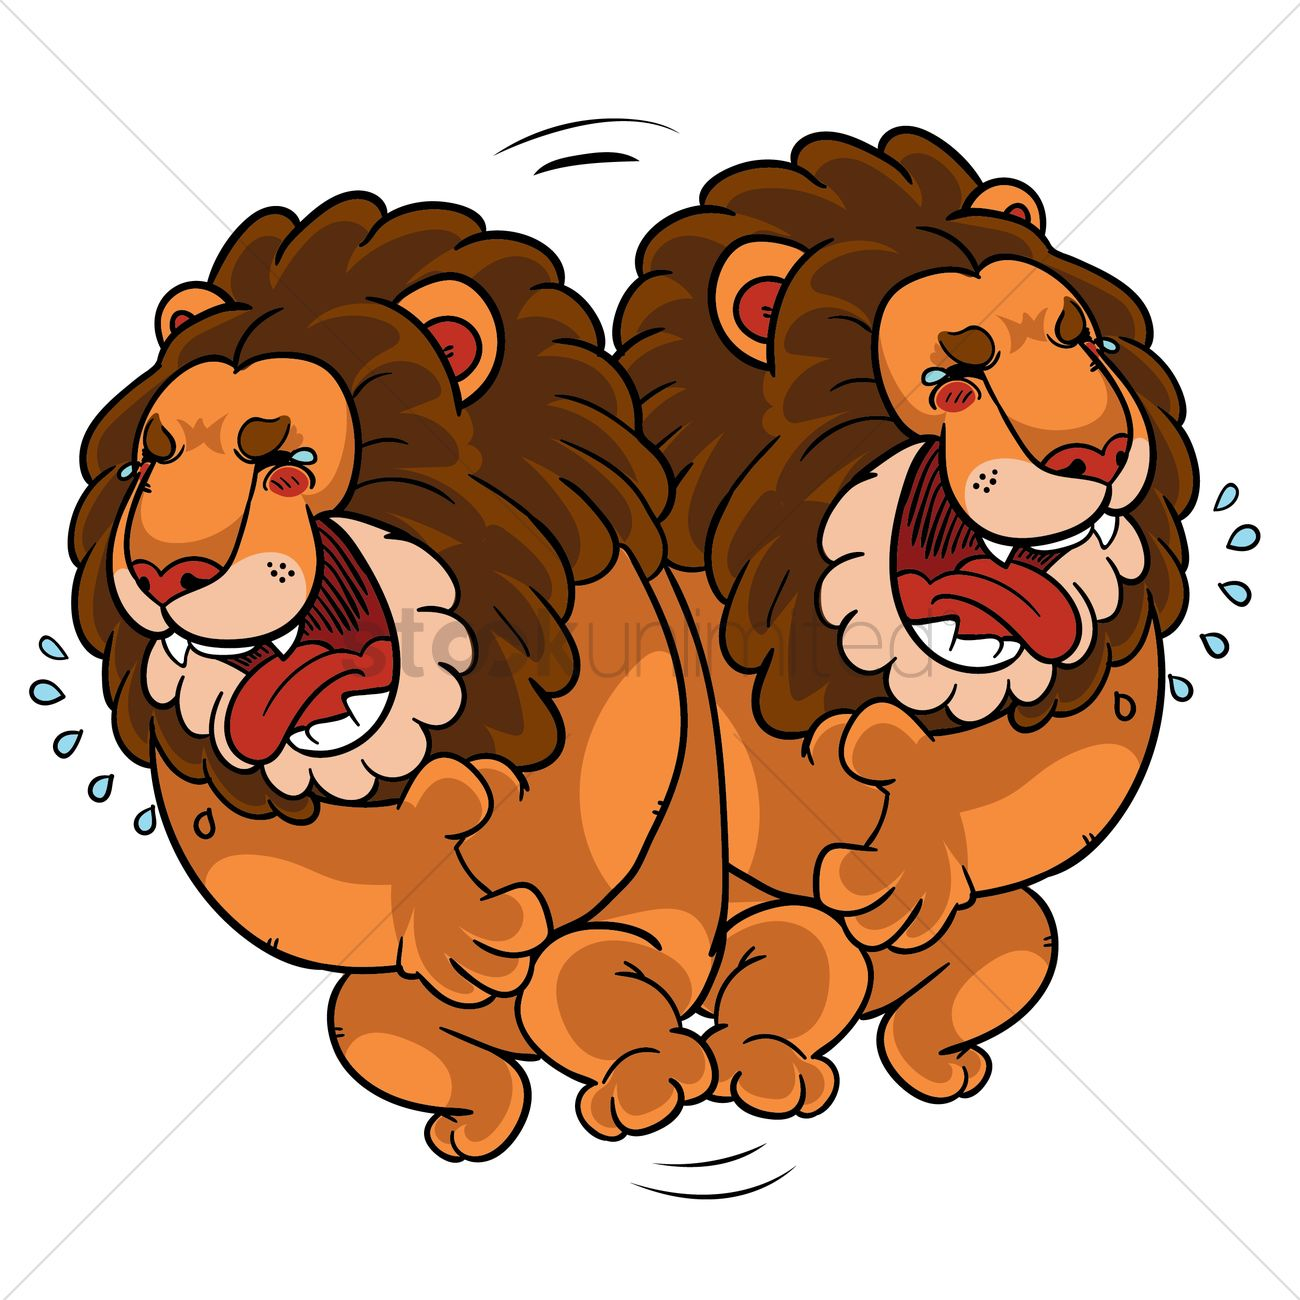 Cartoon lion rolling on floor laughing Vector Image.